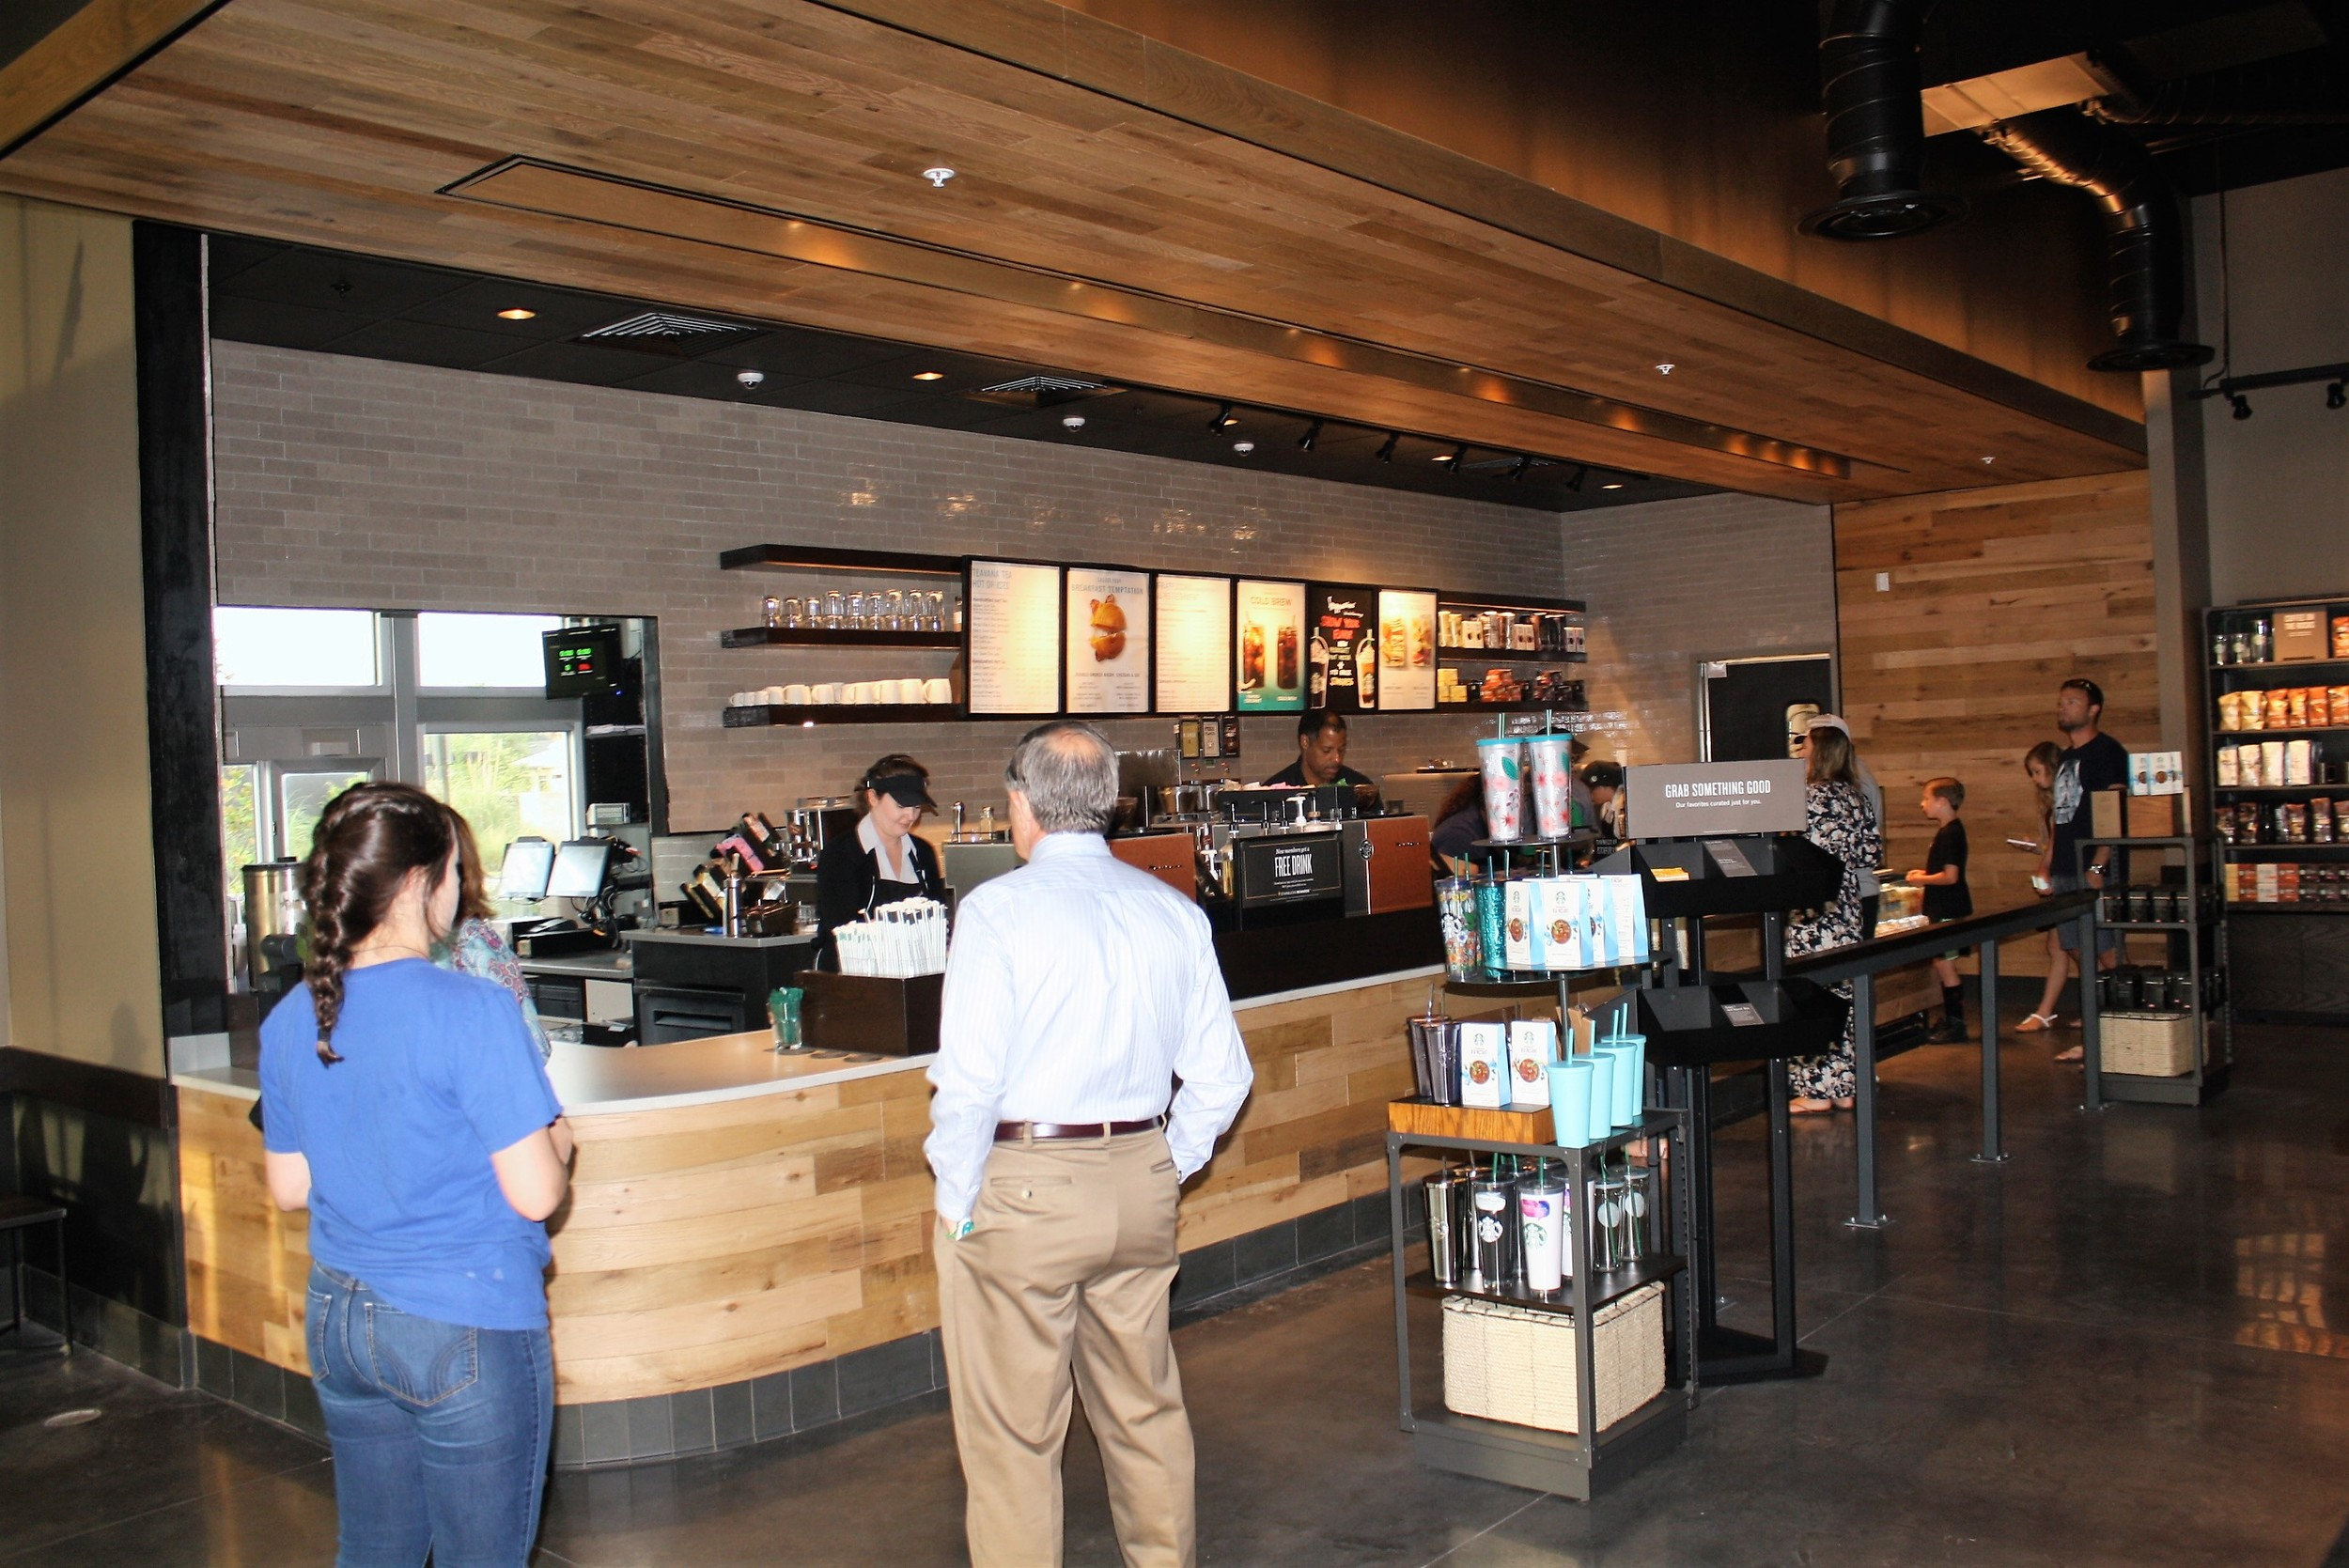 how is dunkin donuts growing its share of customers Dunkin' donuts is well known by generations and loved by a growing number of customers around the world achievements dunkin ' donuts is dedicated to providing delicious food and beverages to its customers and goes to great lengths to ensure only the finest ingredients are used in its recipes — including its espresso beverages.